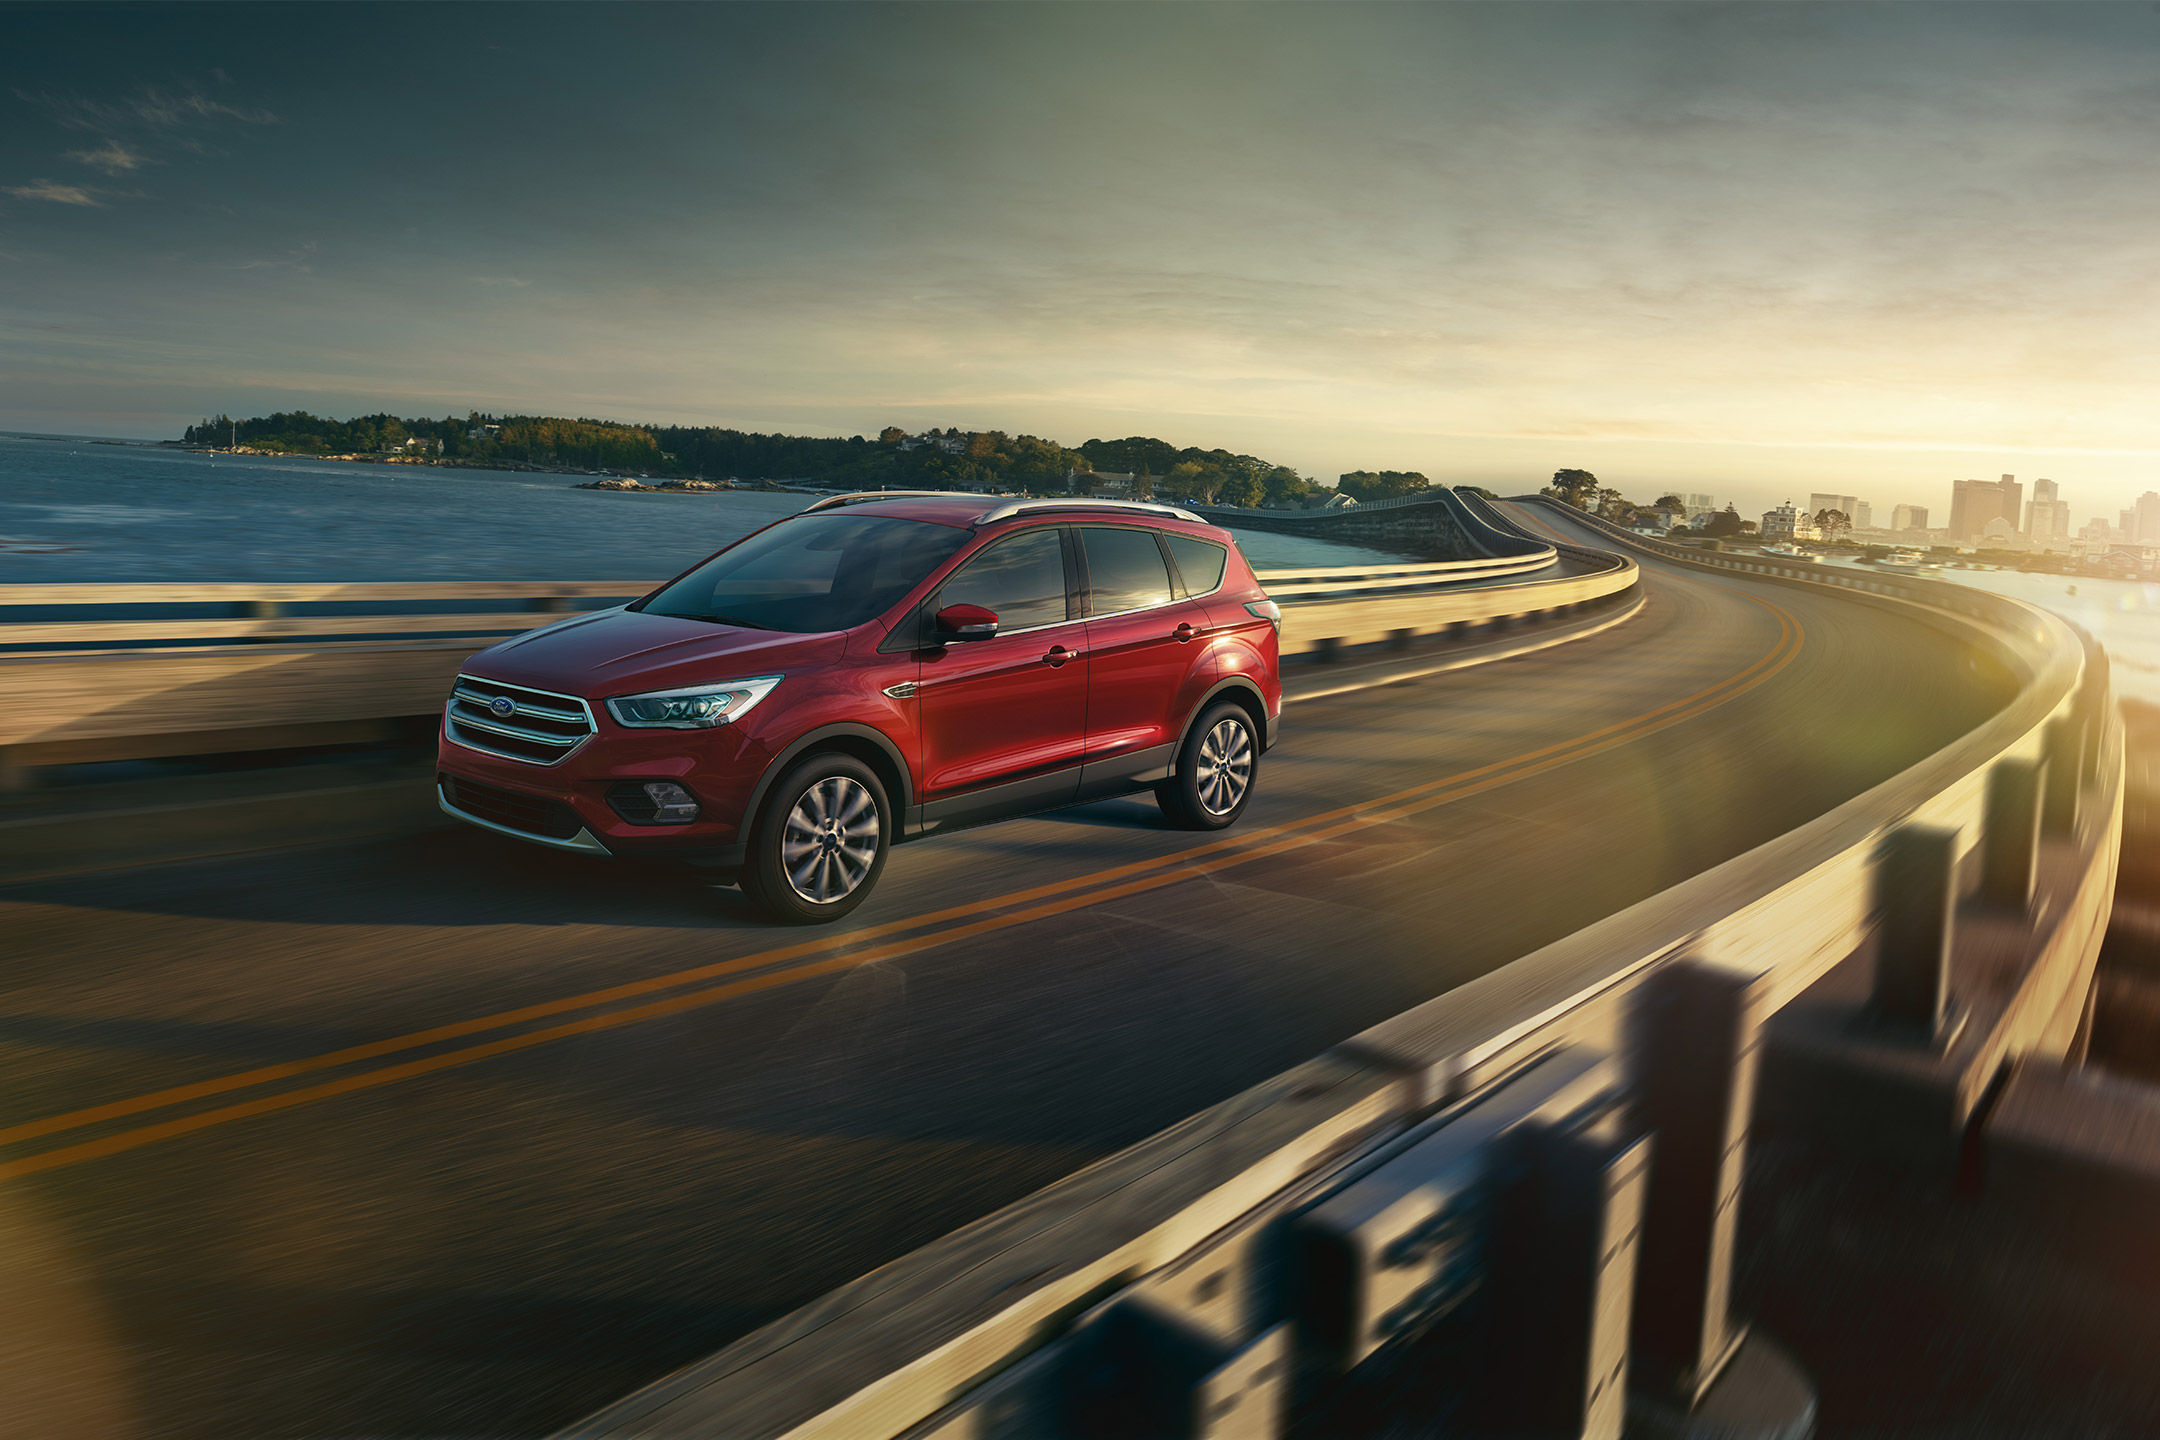 The 2017 Ford Escape